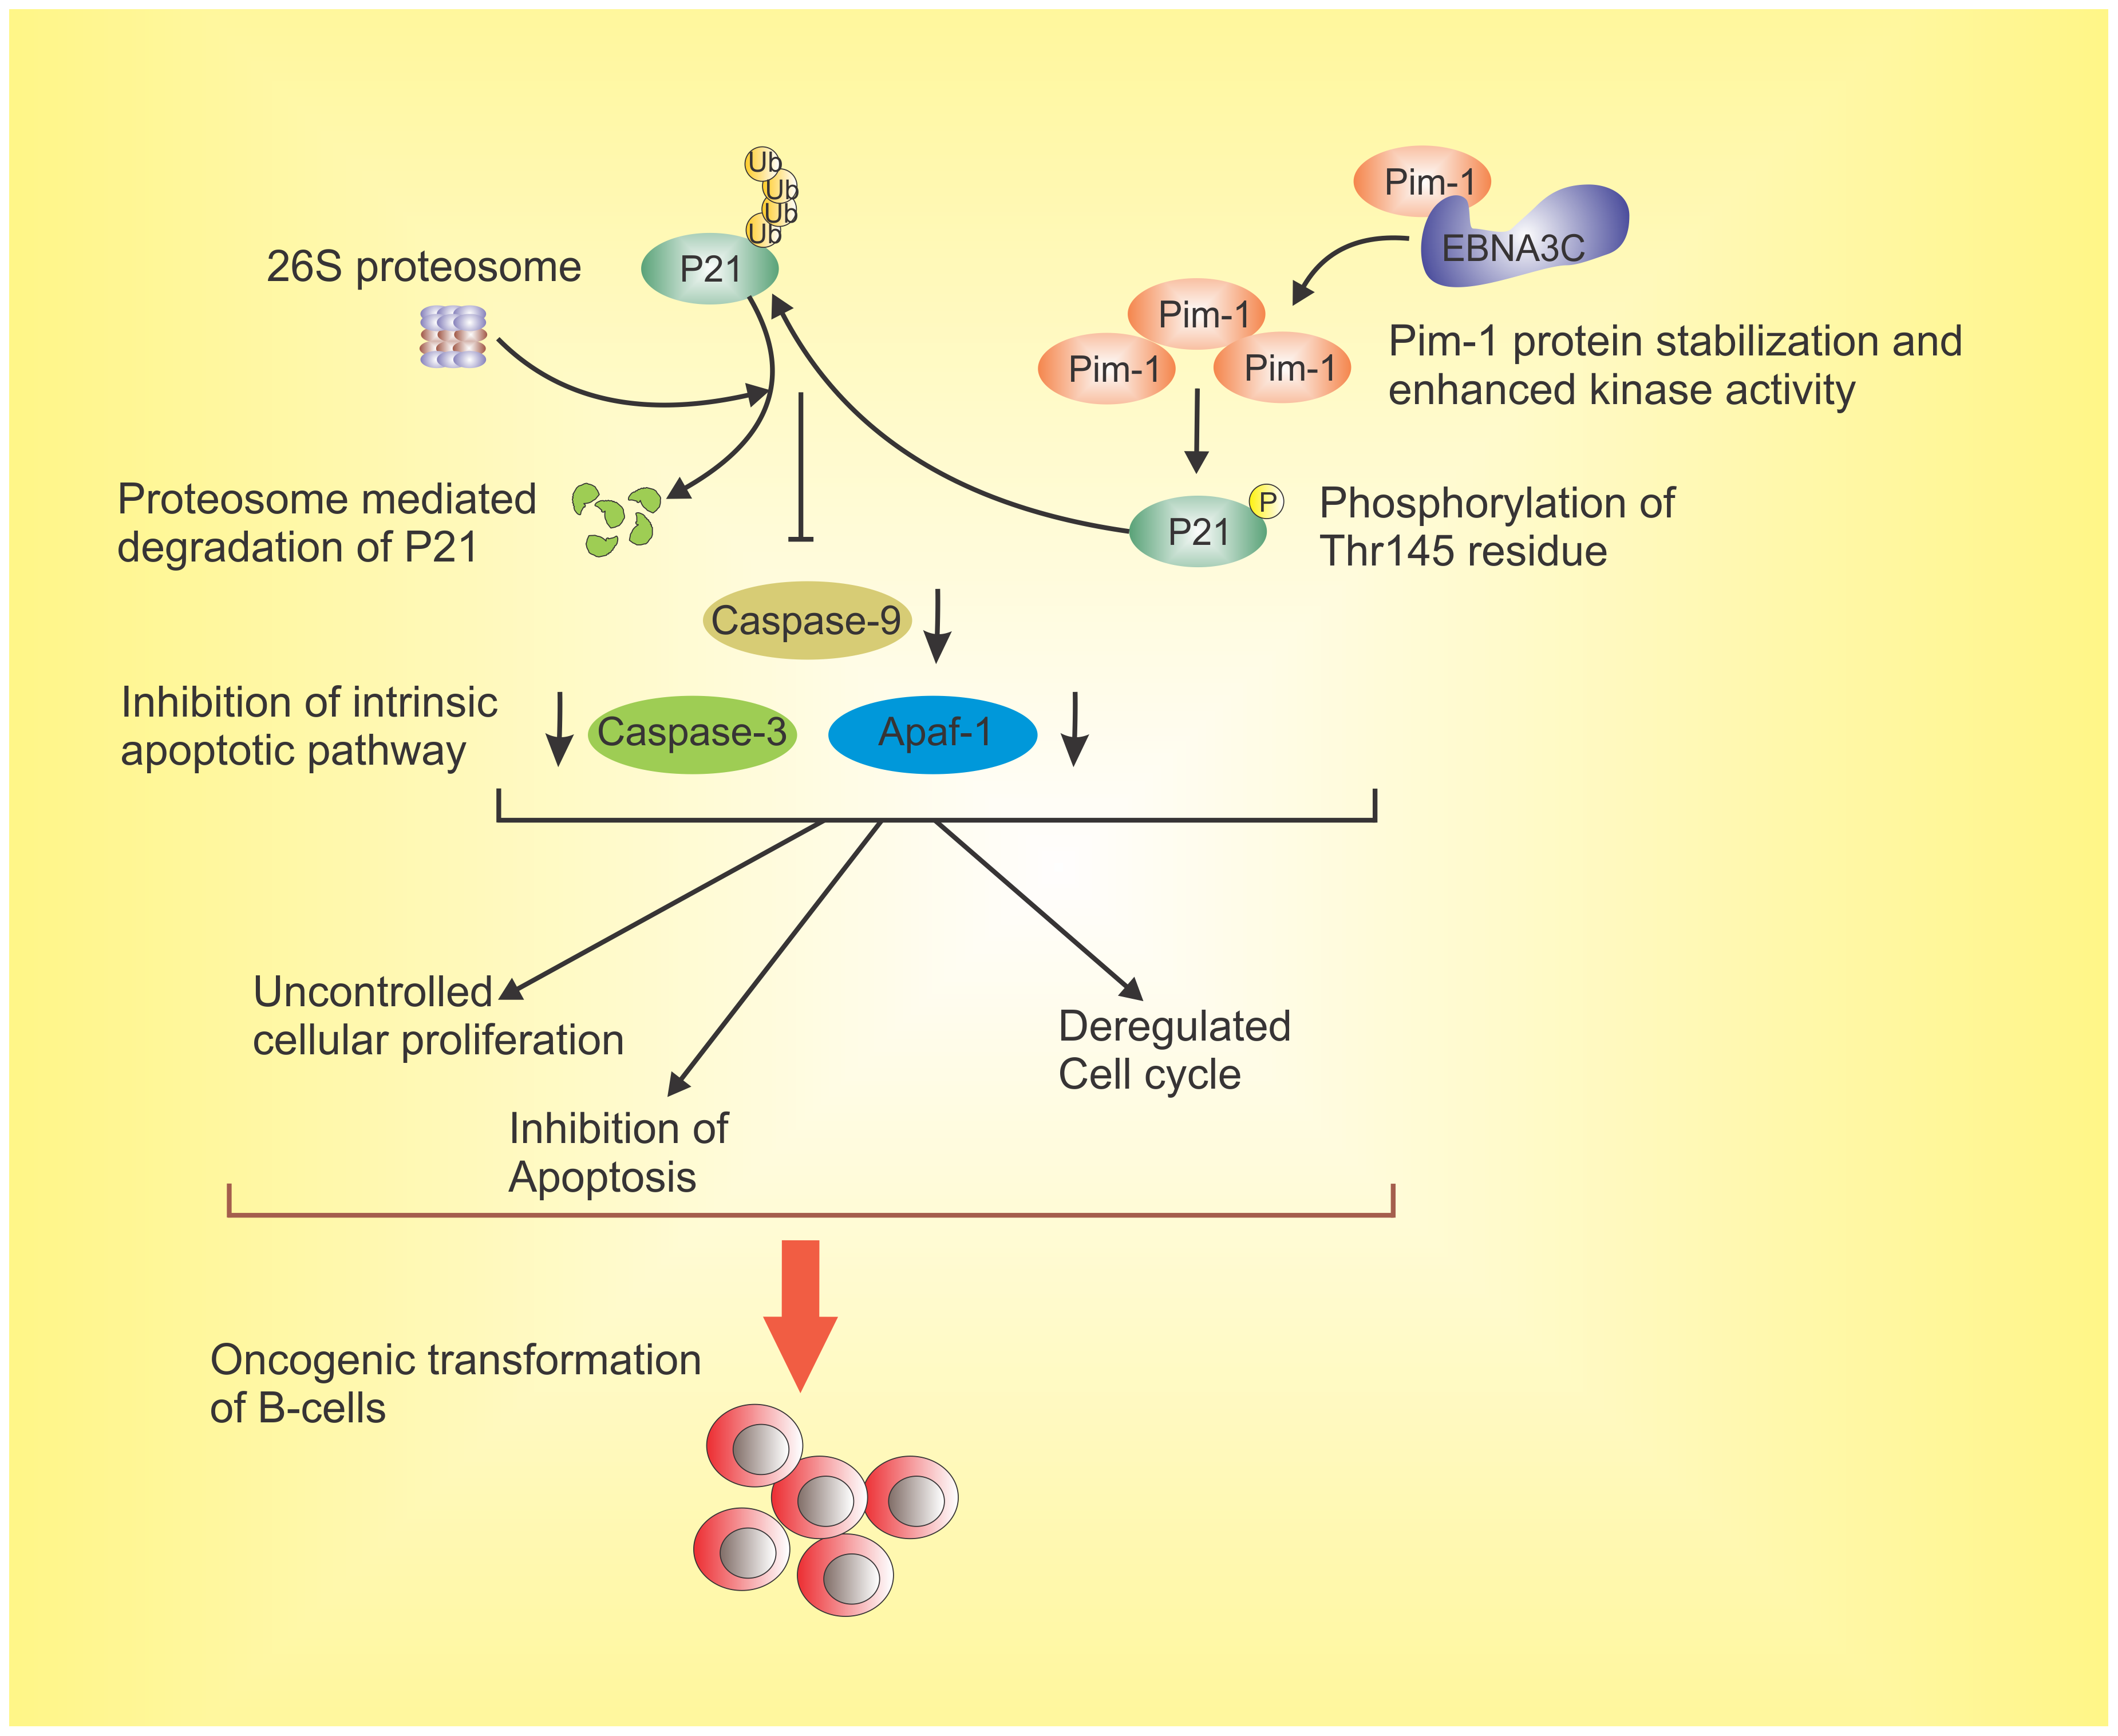 The schematic diagram illustrates the potential contribution of EBNA3C to oncogenic transformation of B-cells through stabilization of Pim-1 and proteasome mediated degradation of p21 which results in inhibition of the intrinsic apoptotic pathway.